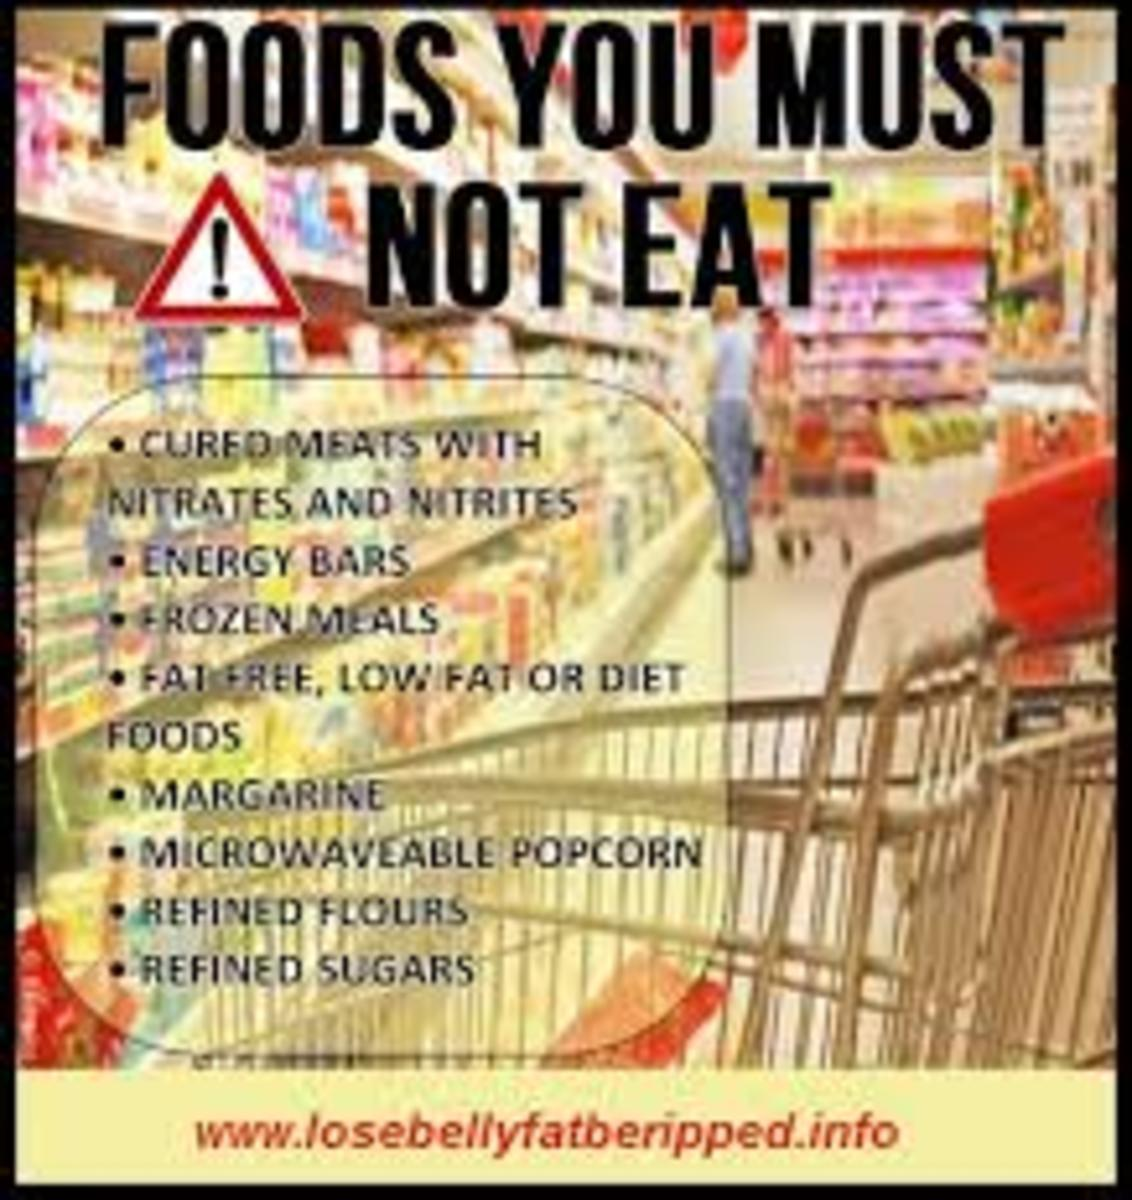 Charred or smoked foods, high saturated fat foods like meat, trans-fats found in supermarket baked and fried foods and packaged snacks like potato chips as well as microwave popcorn, high sugar and salt foods can lead to disease.